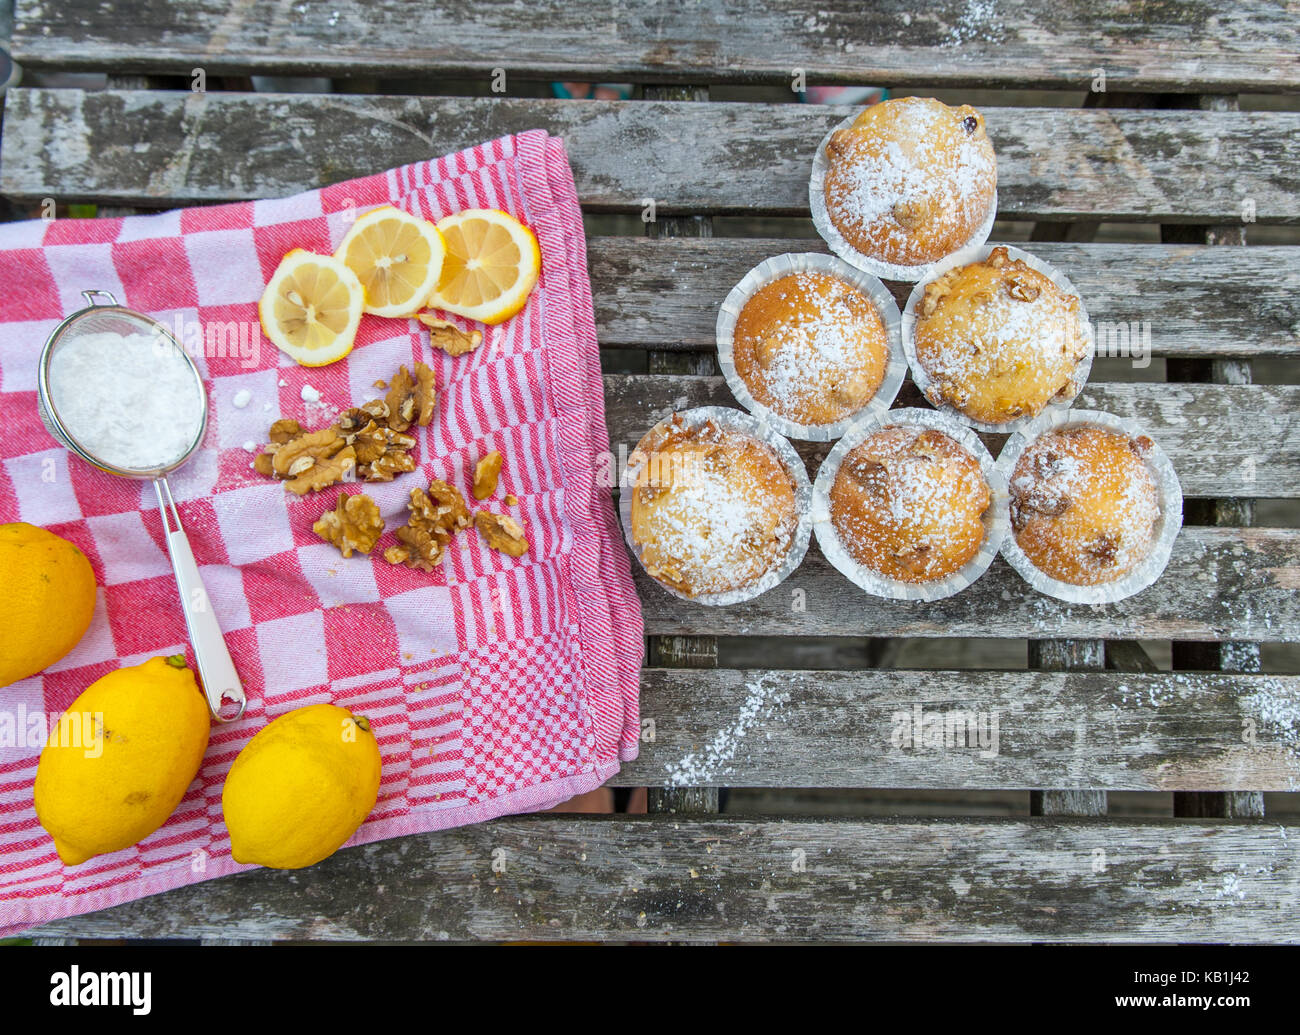 Homemade cupcakes with lemon on a wooden table - Stock Image